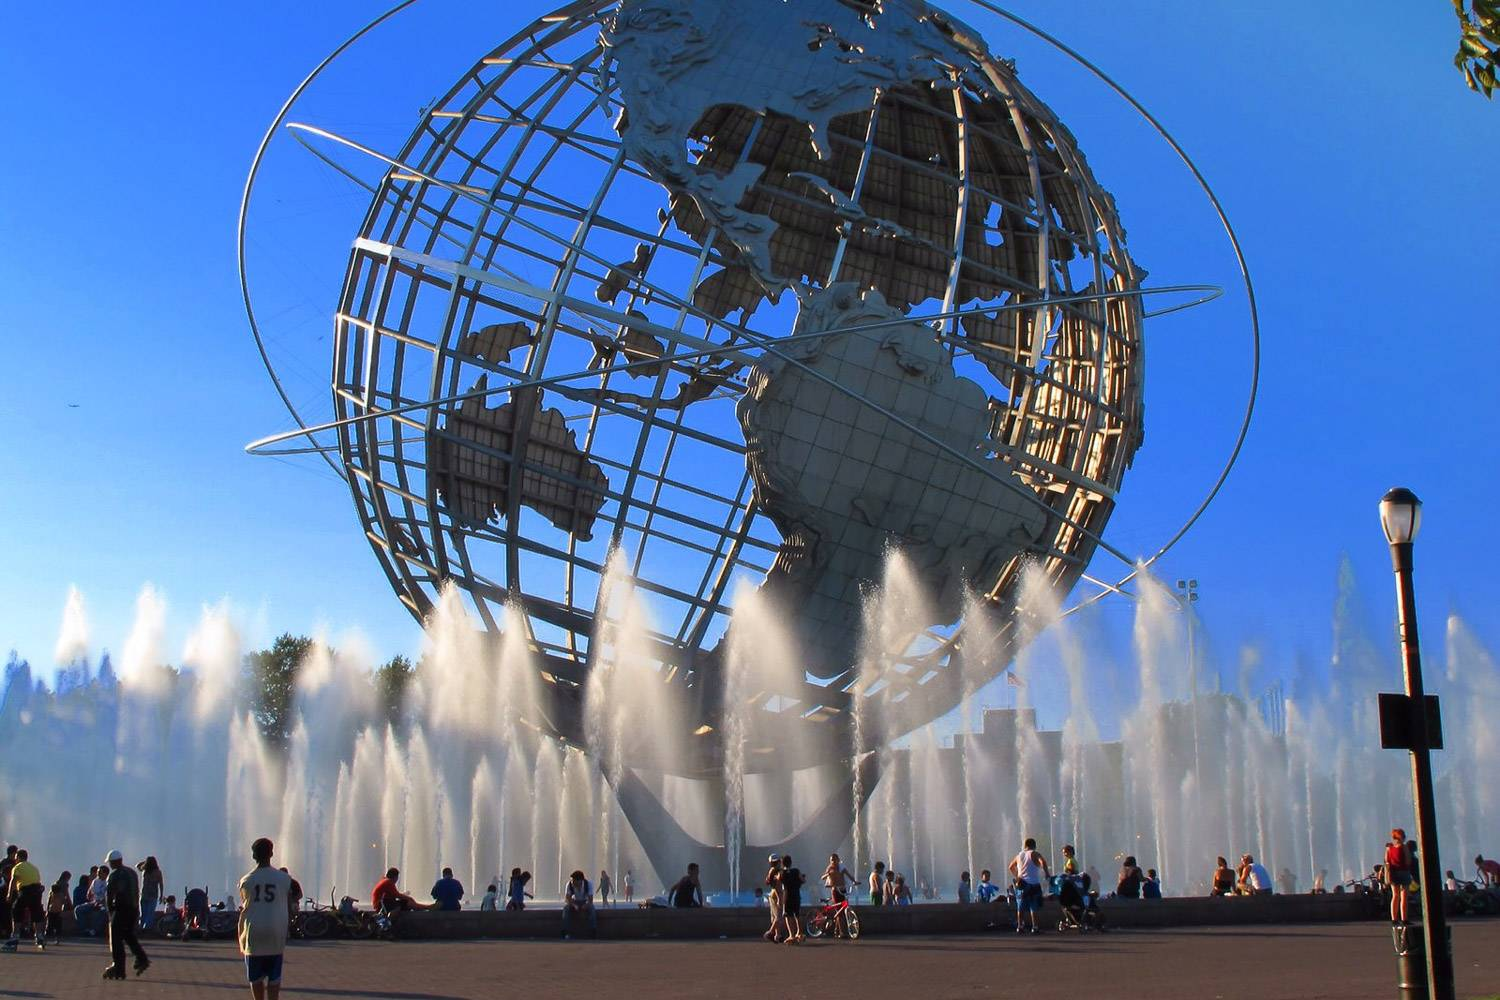 Immagine di fontane intorno al Globo di Flushing Meadows Park nel Queens (Photo credit: Chun Yip So CC BY 2.0)